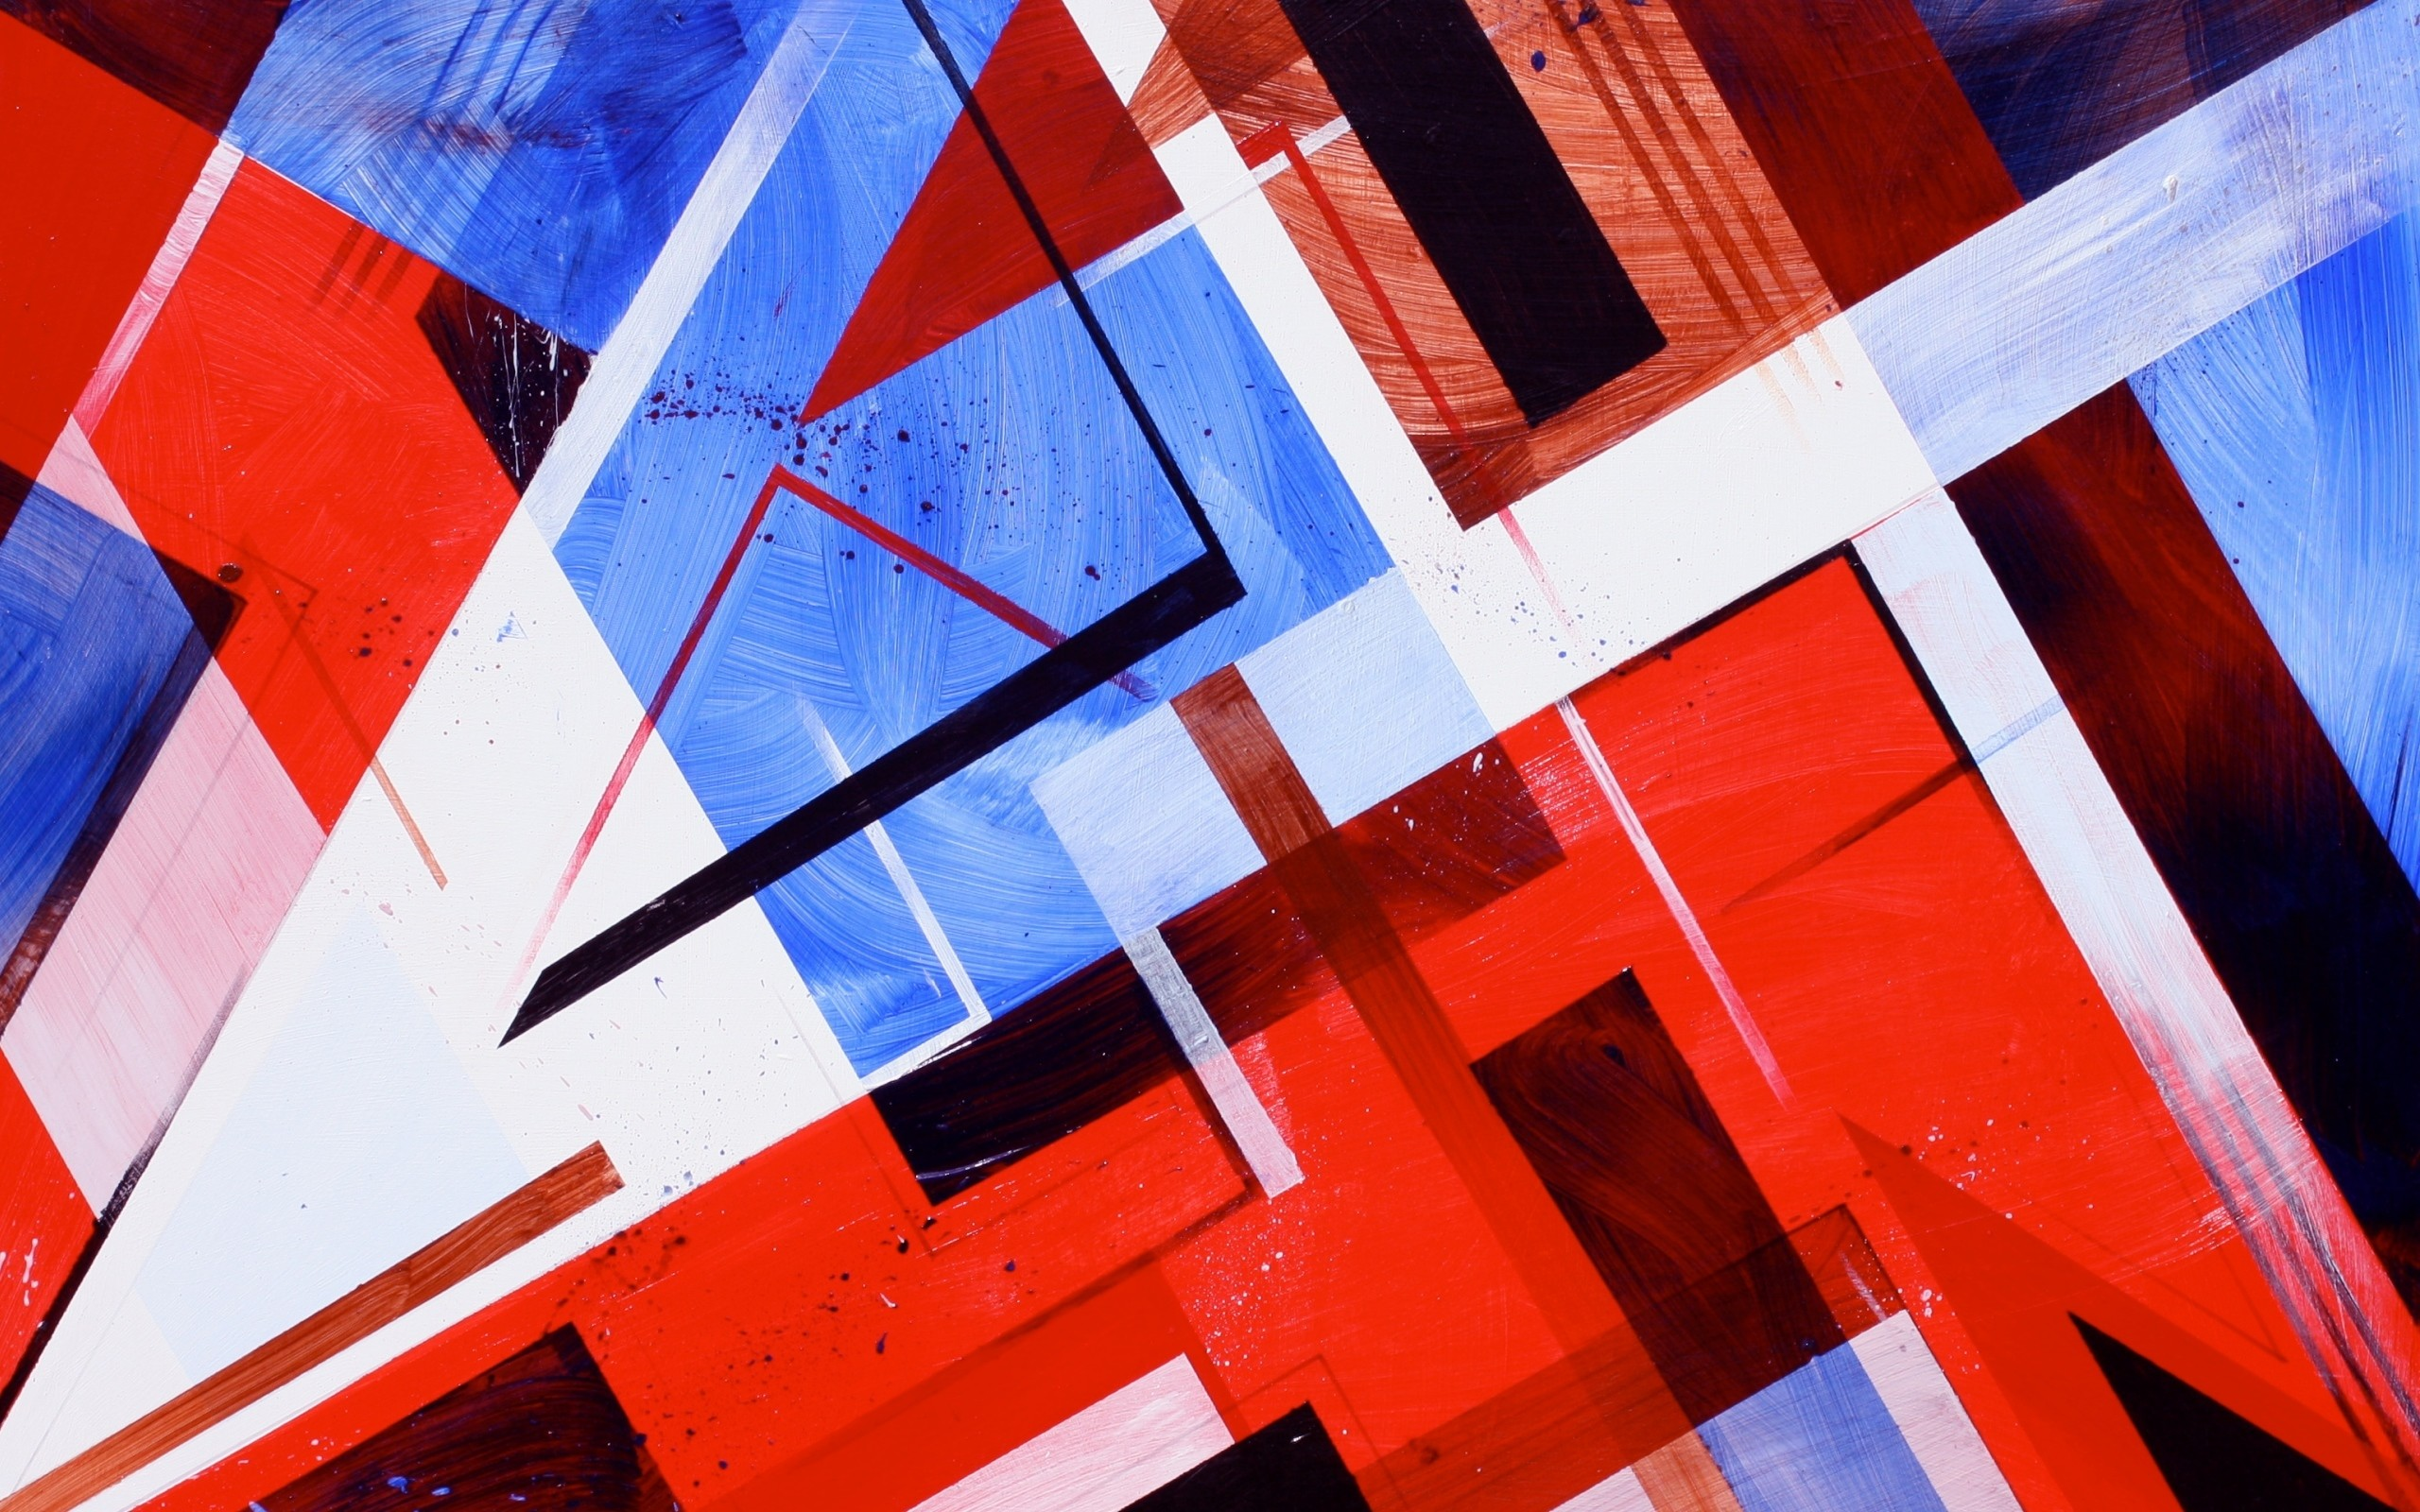 2560x1600 Red, White and Blue Abstract Shapes wallpaper